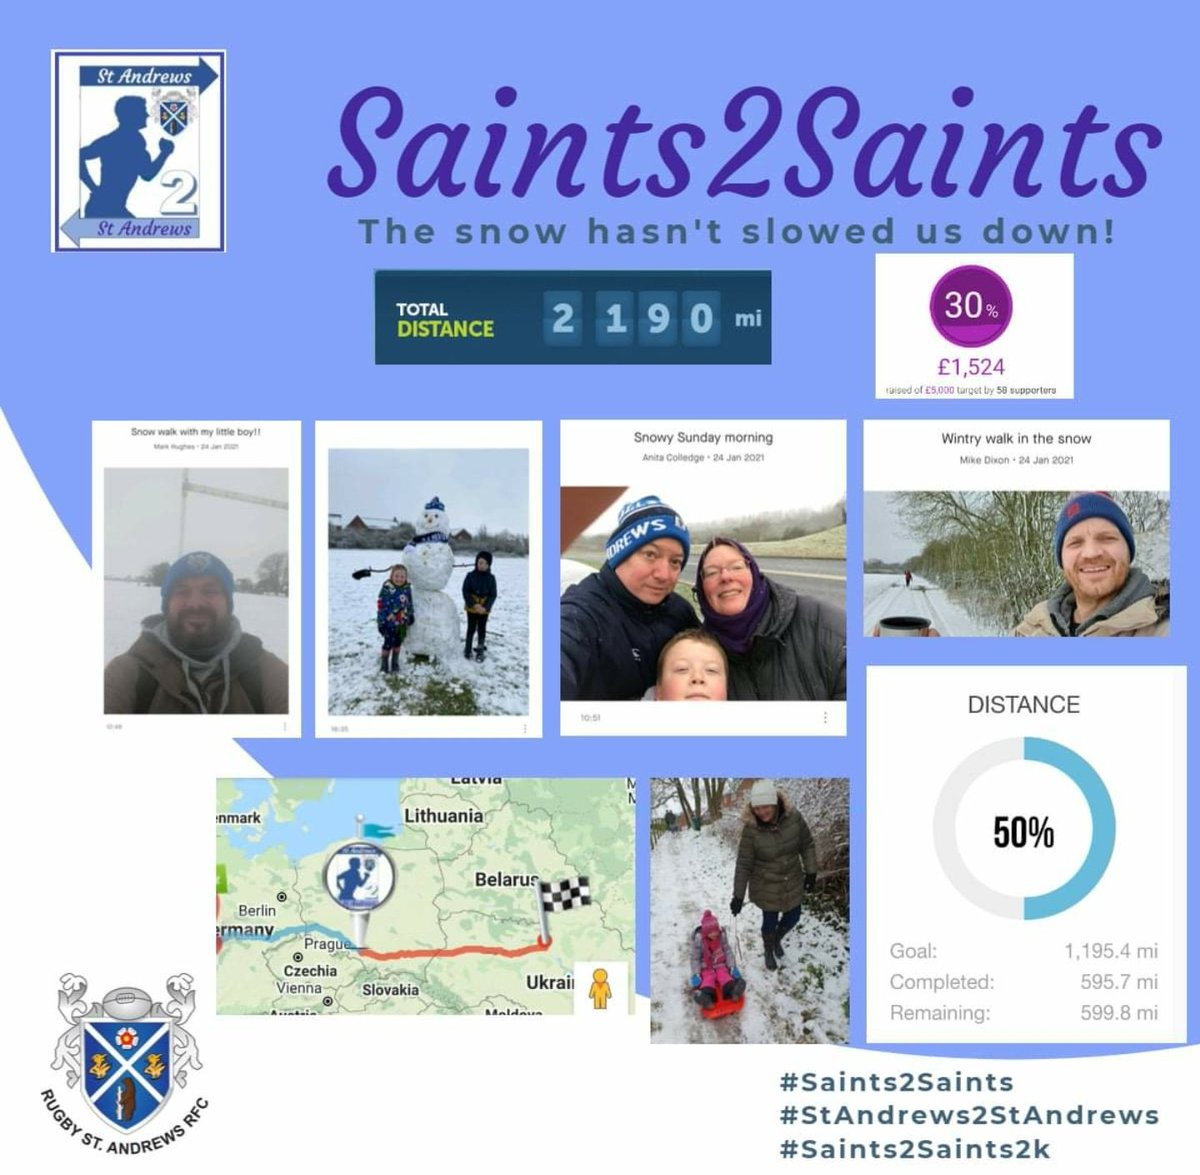 The Snow does not slow down the saints, over 500 miles this weekend.  We now have over 100 people covering miles for us, well done for all involved.  Keep donations coming.  [)  #Saints2Saints #StAndrews2StAndrews #Saints2Saints2k #JustGiving #Mind #Charity